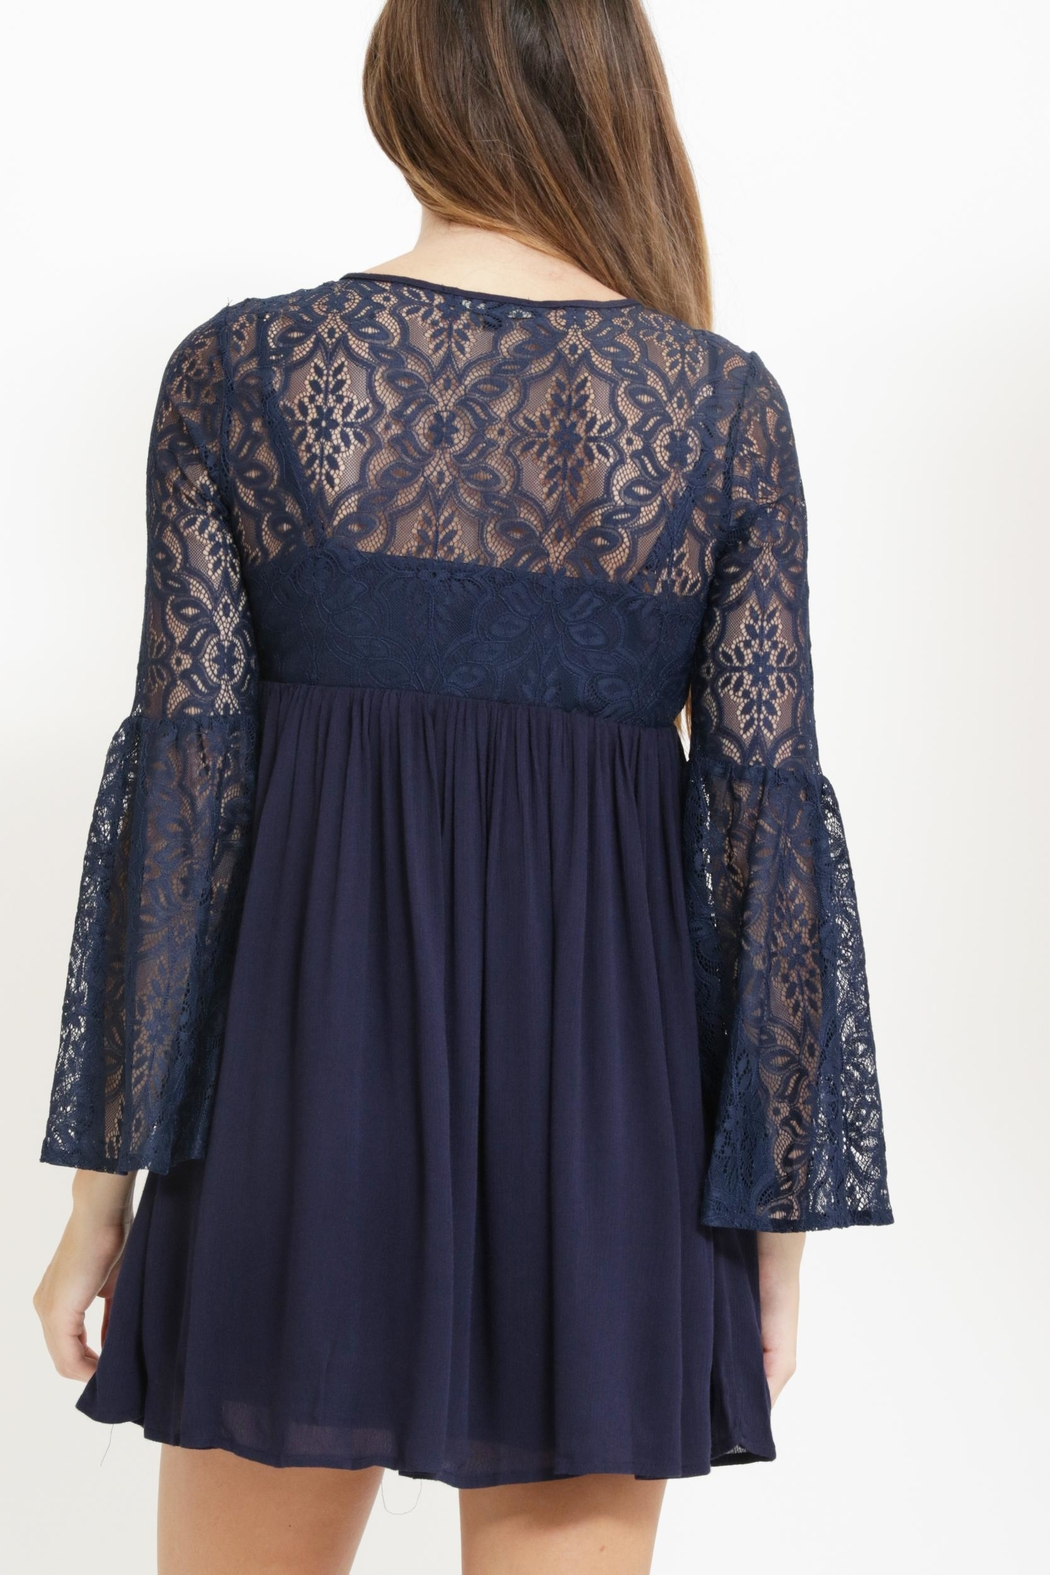 The Clothing Co Lacey Bell Sleeve Dress - Side Cropped Image